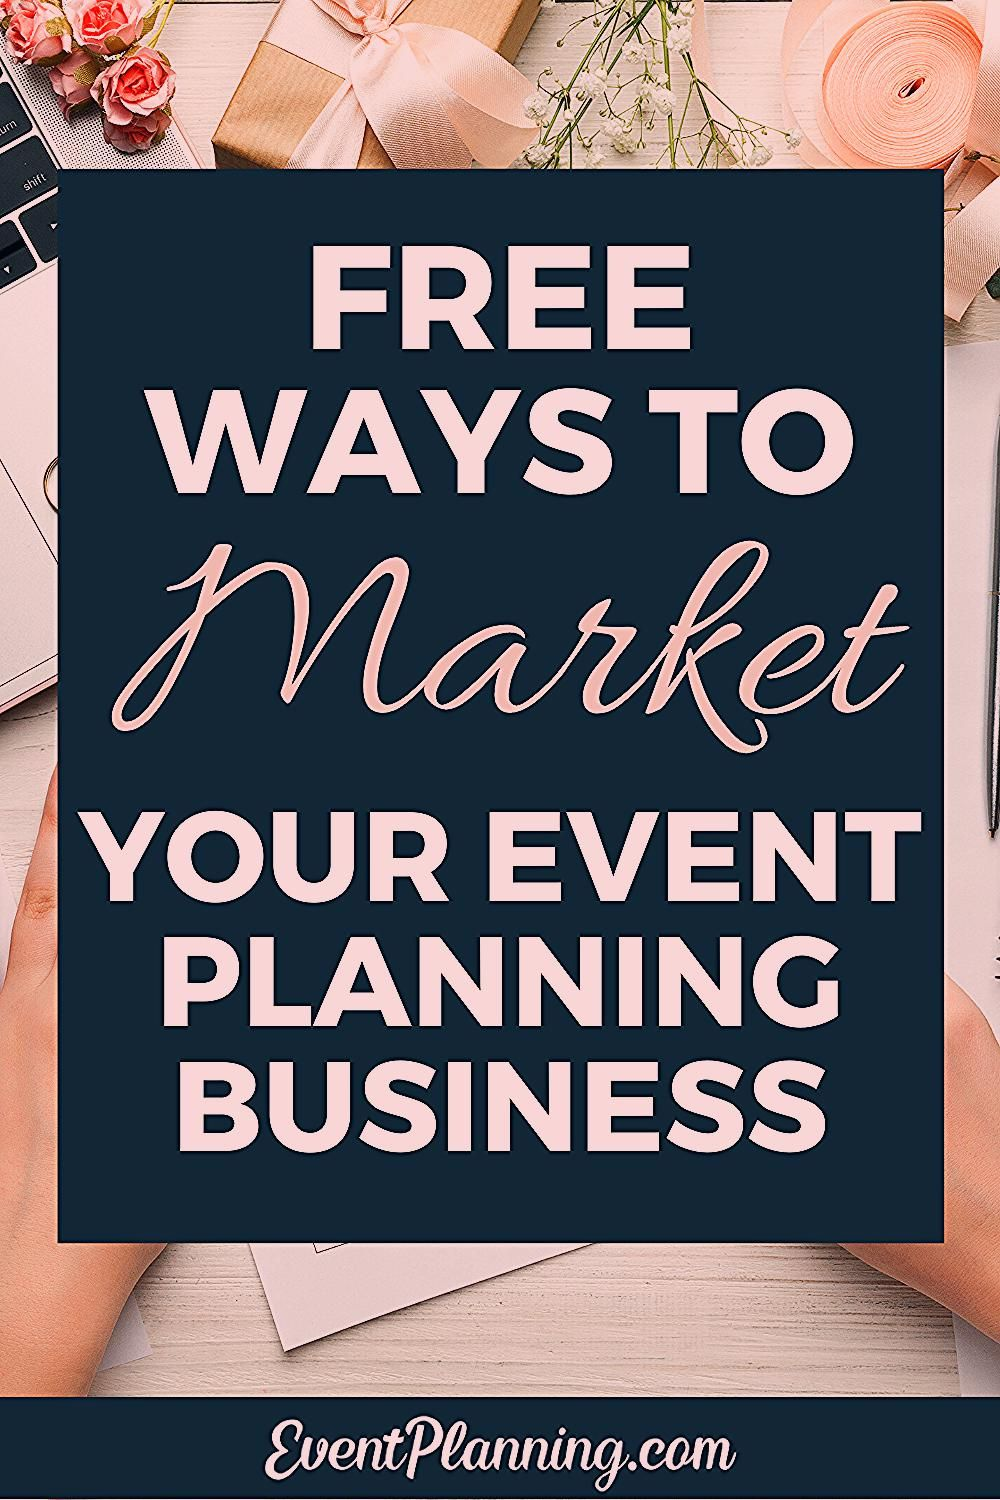 Photo of How to Market your Event Planning Business for Free